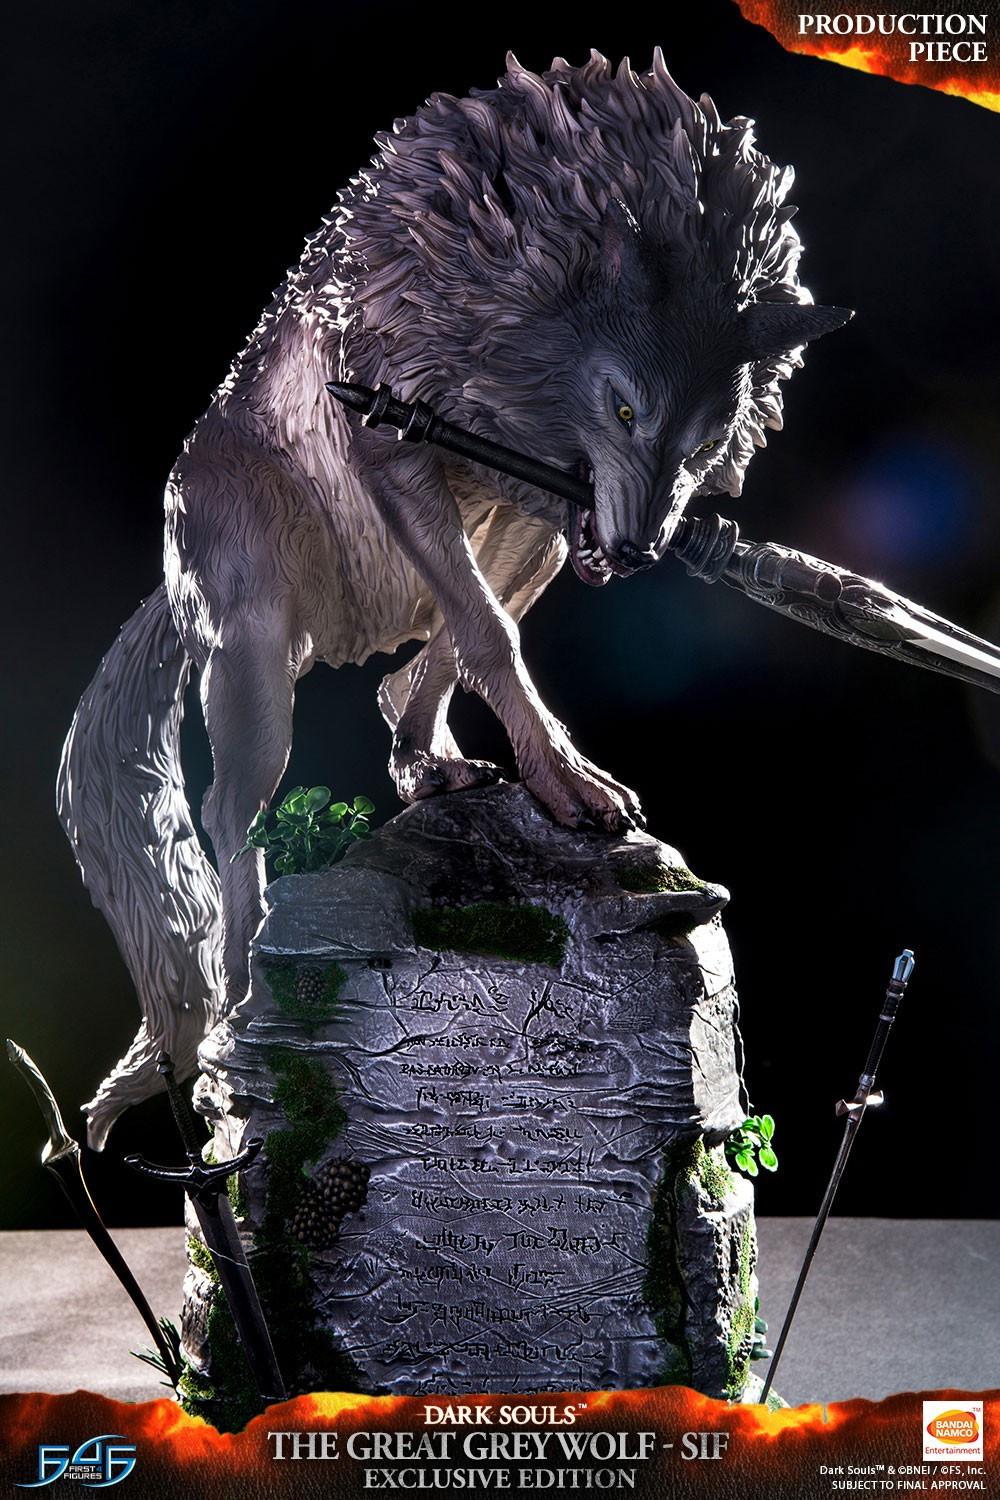 The Great Grey Wolf, Sif